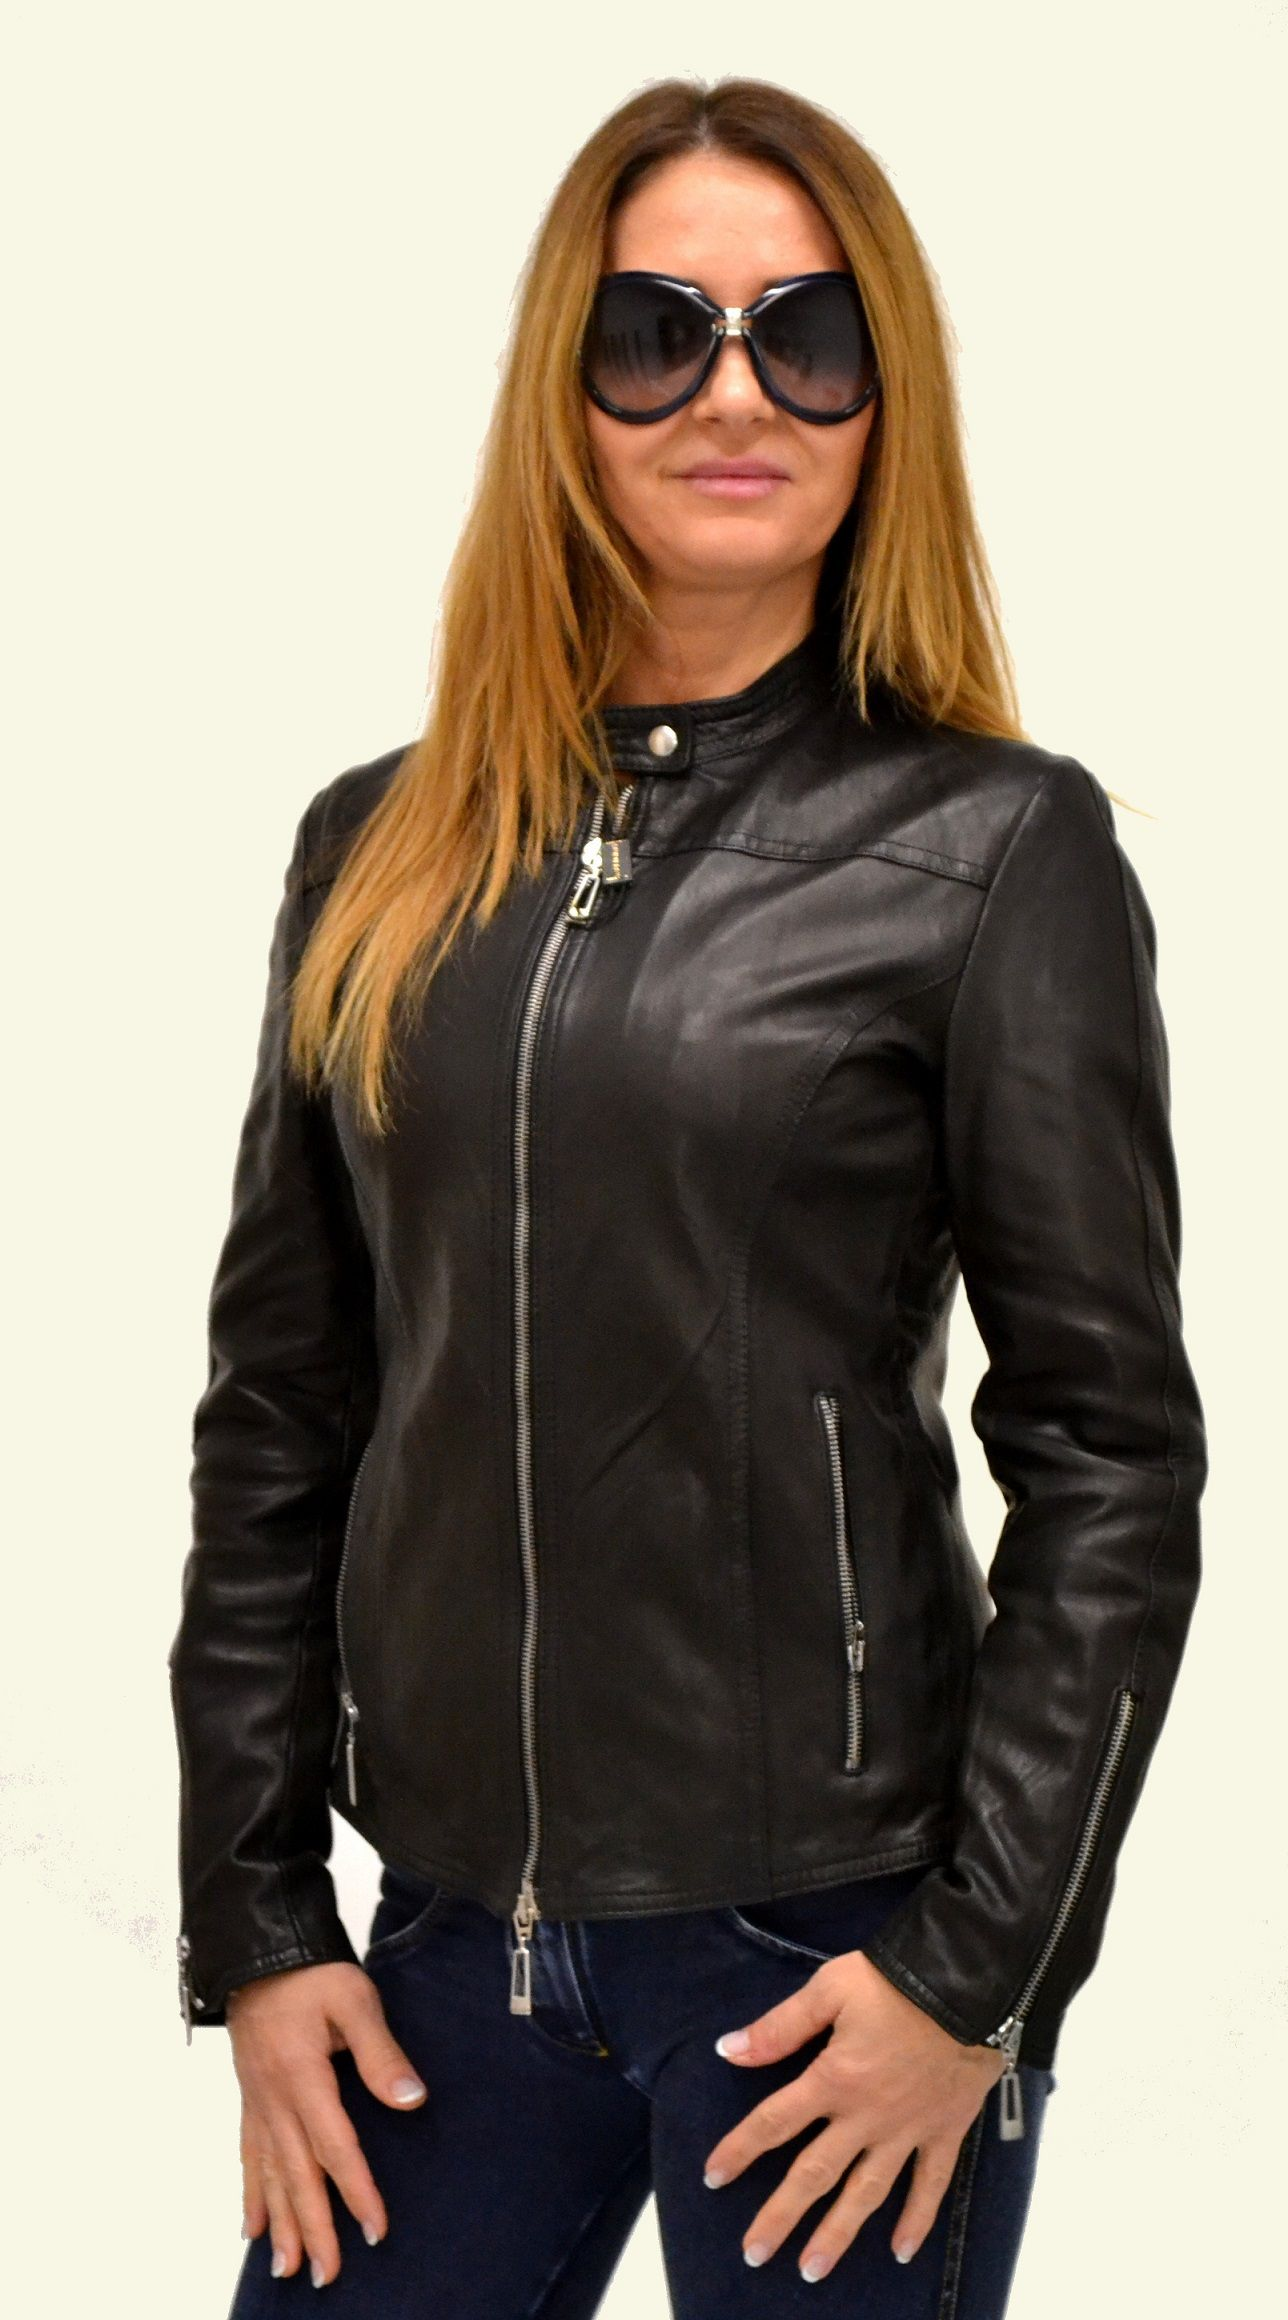 the latest aad33 02f57 Woman leather jacket silver zip Giubbino nappa con zip ...